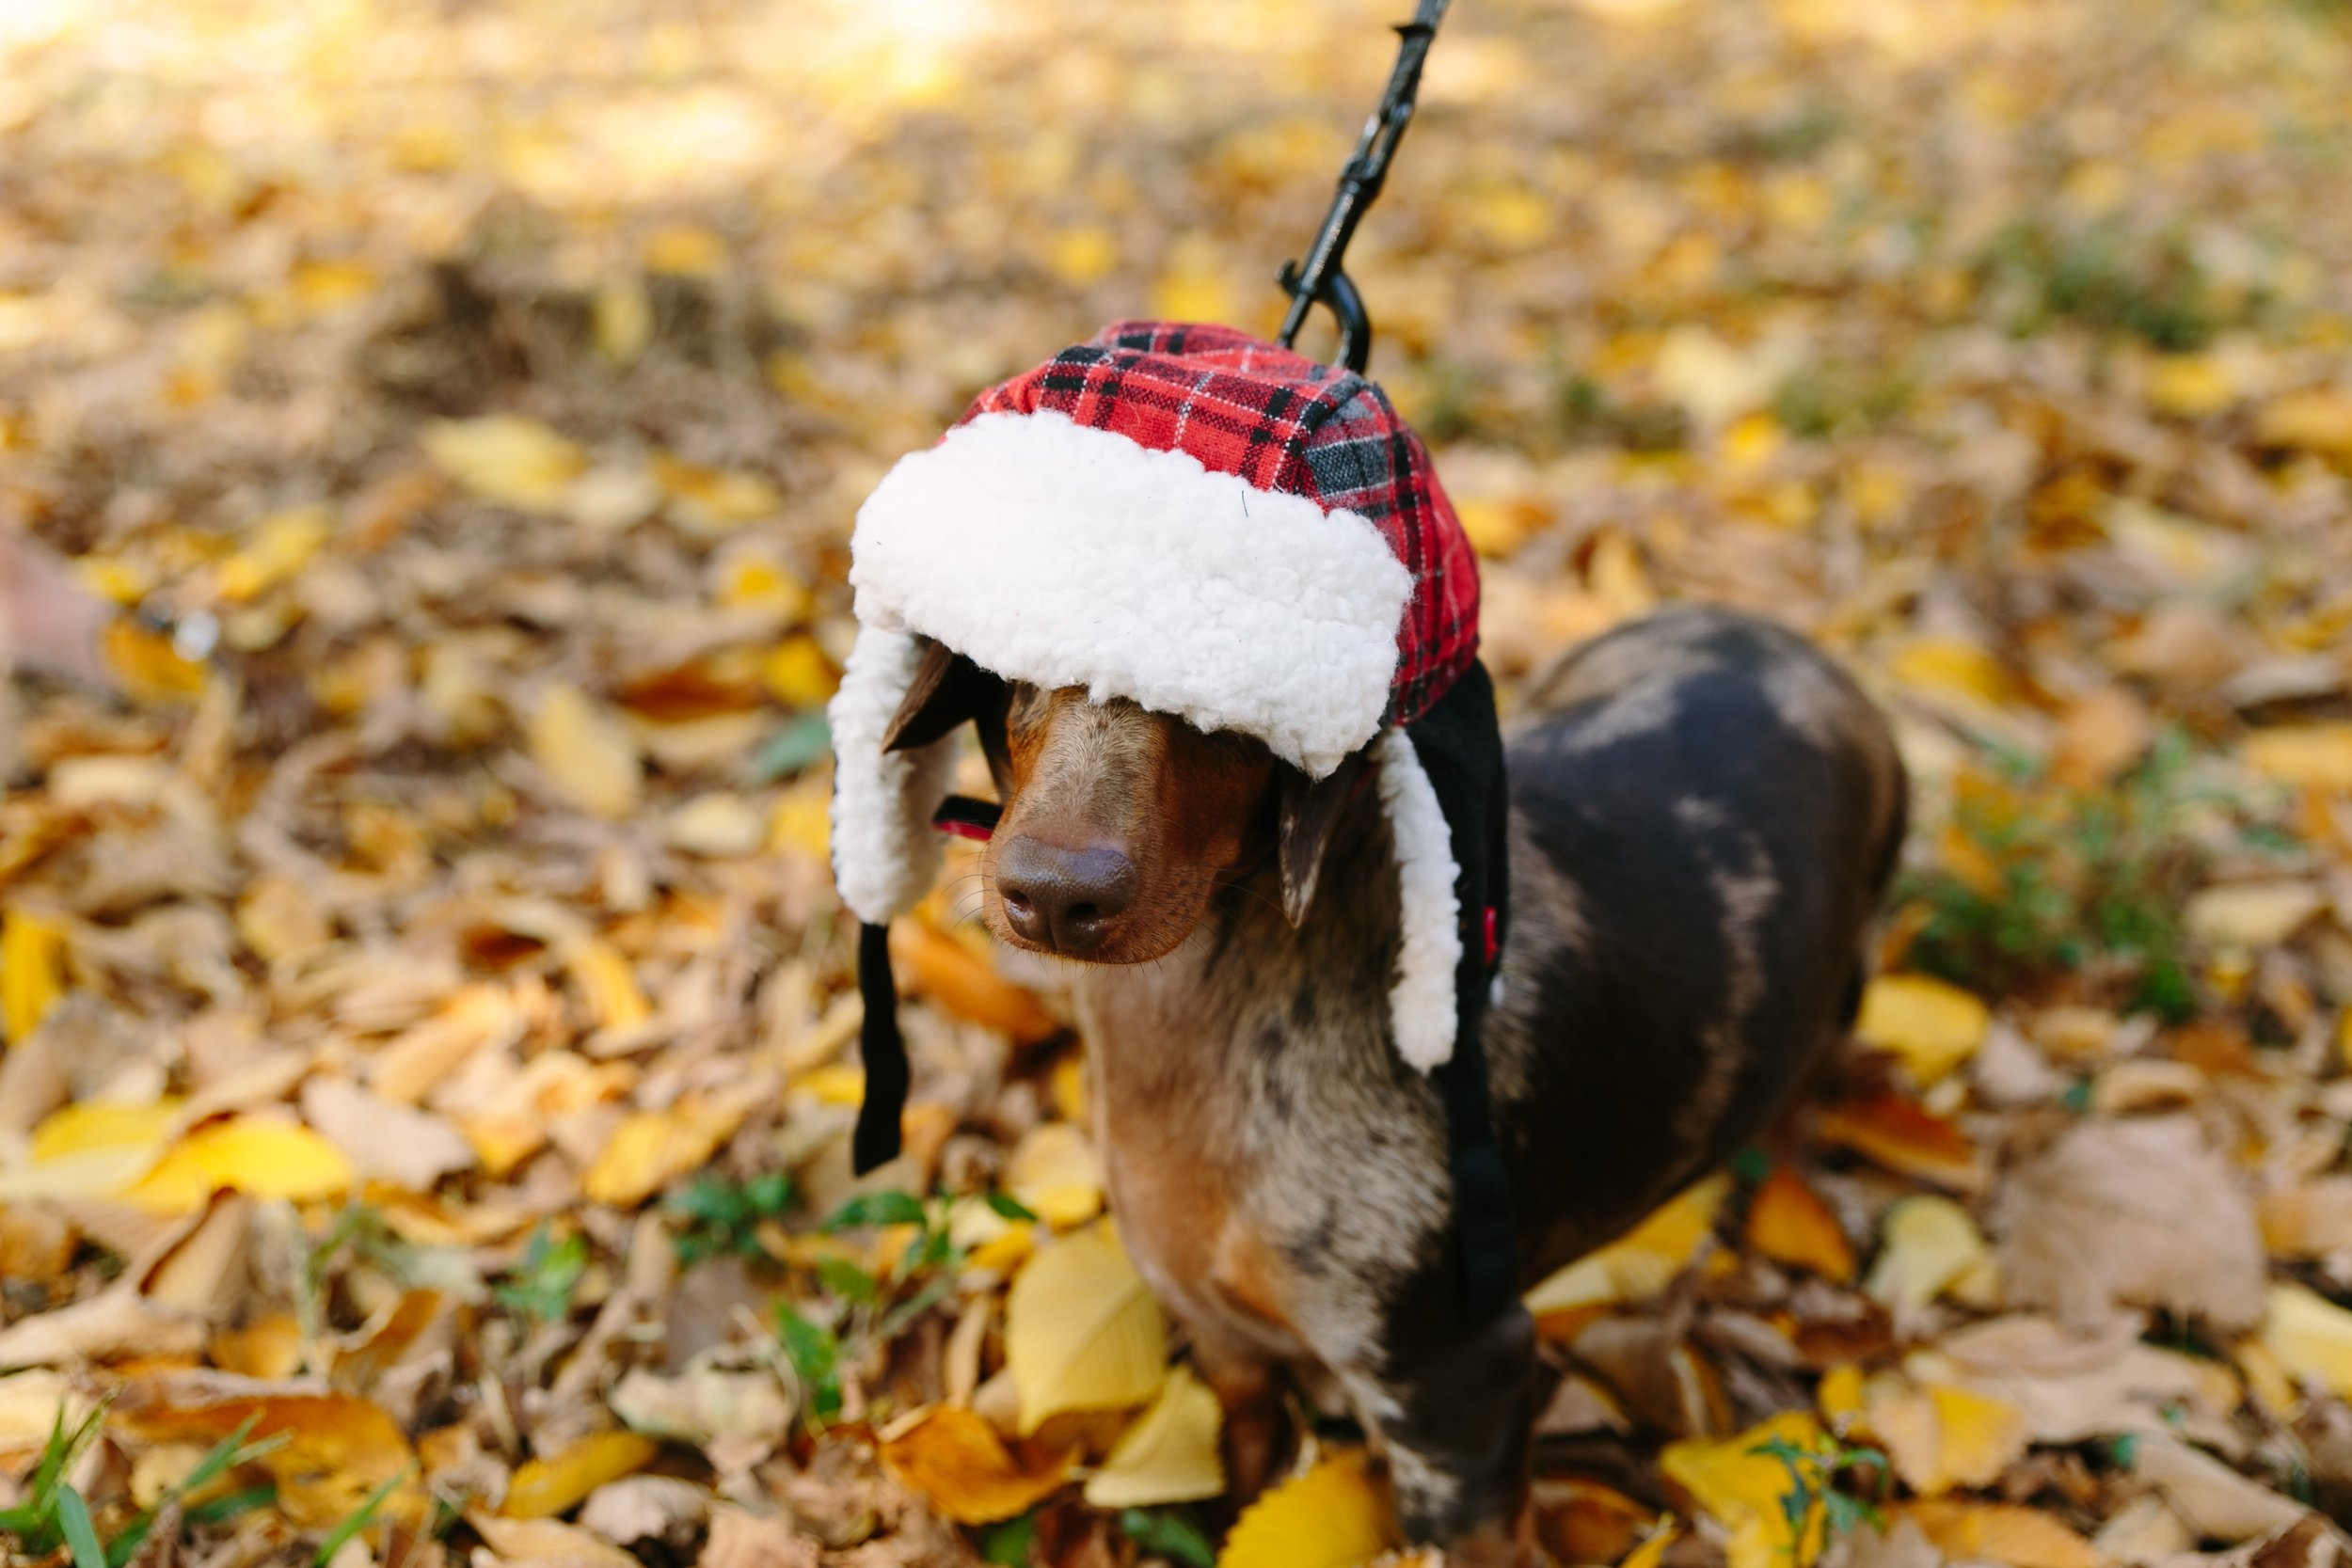 Find a fall hat that makes you feel this sassy.✌🏻